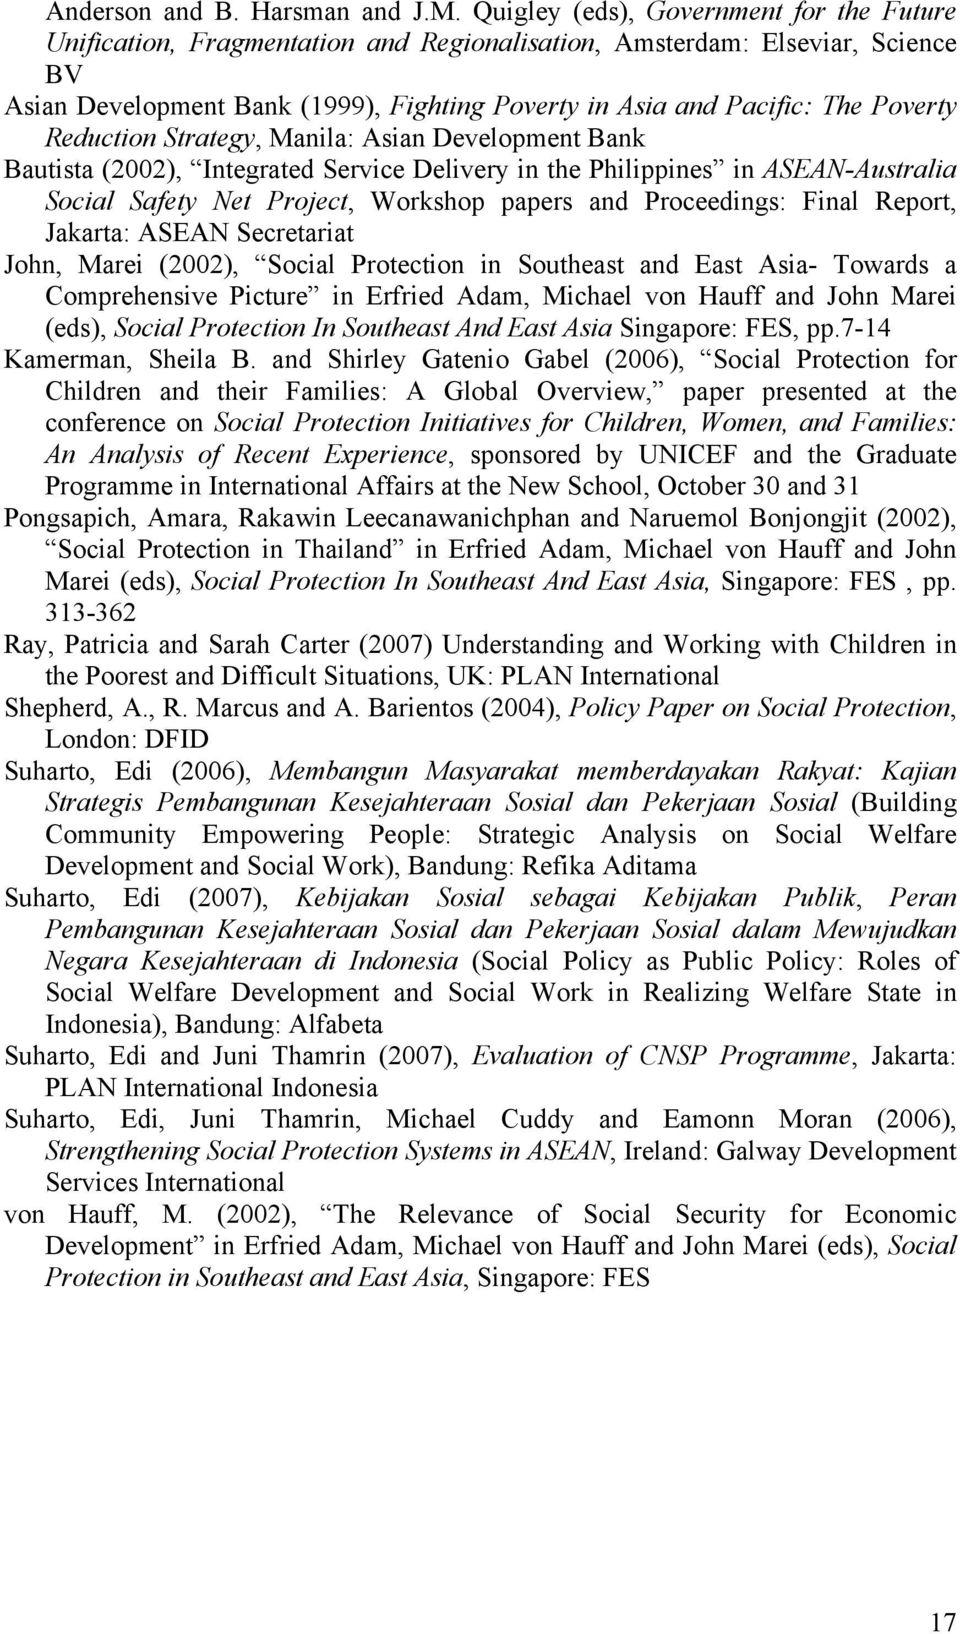 Poverty Reduction Strategy, Manila: Asian Development Bank Bautista (2002), Integrated Service Delivery in the Philippines in ASEAN-Australia Social Safety Net Project, Workshop papers and